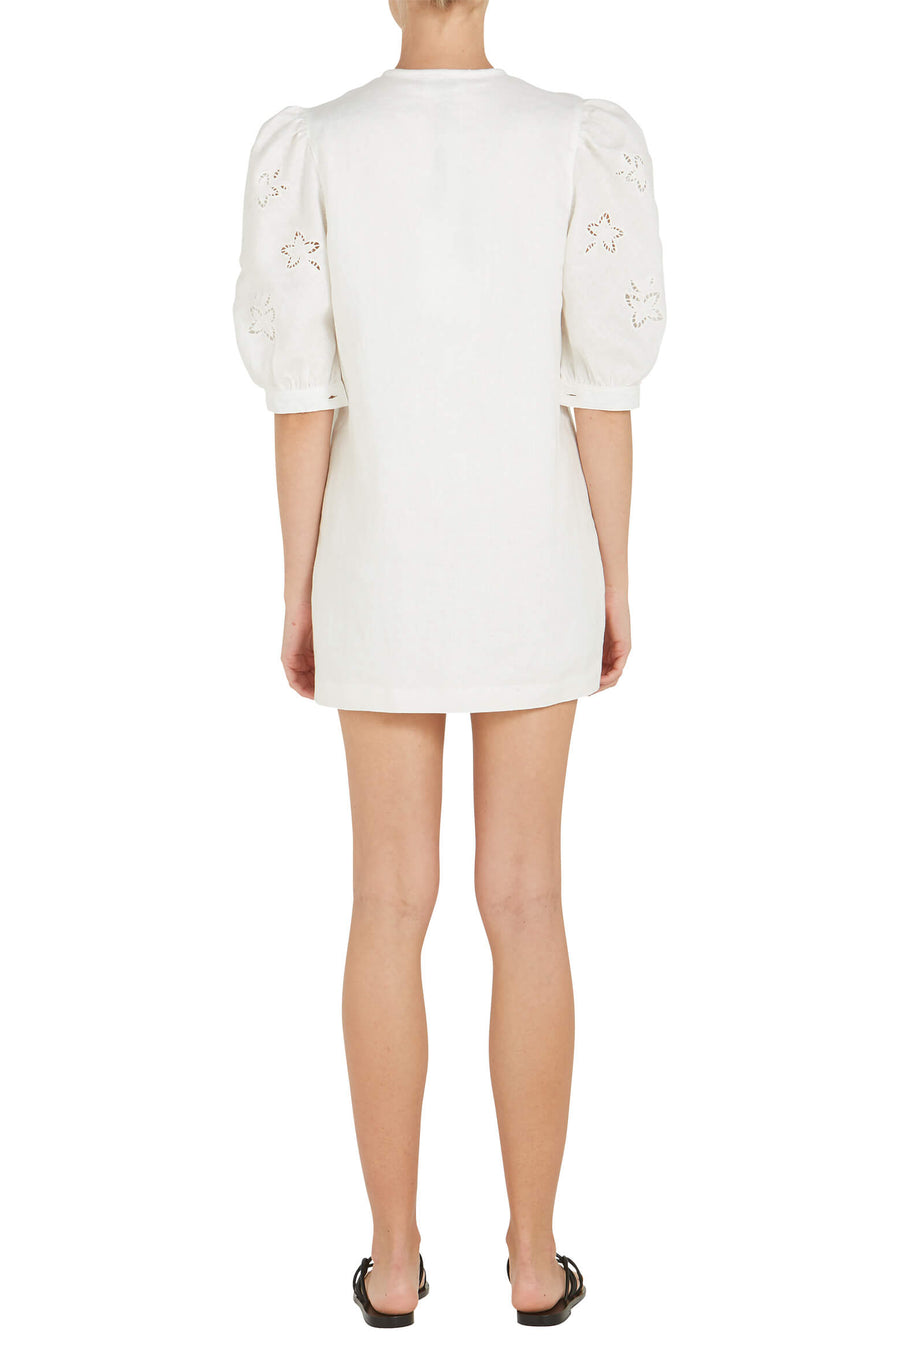 Sir The Label Alena Mini Dress from The New Trend